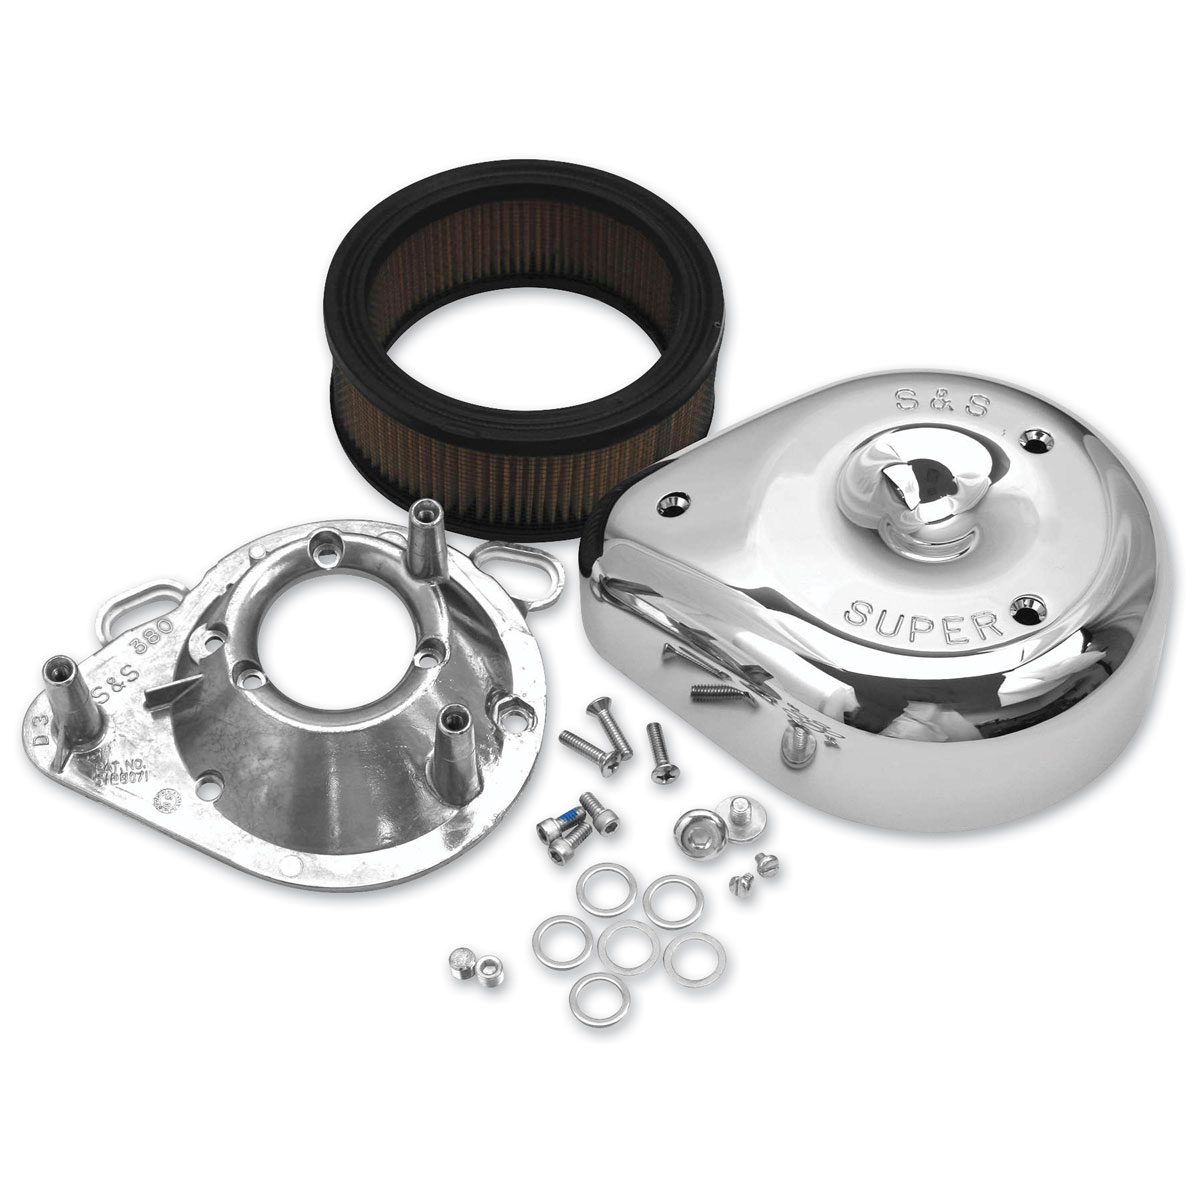 S&S Cycle Classic Teardrop Air Cleaner Kit